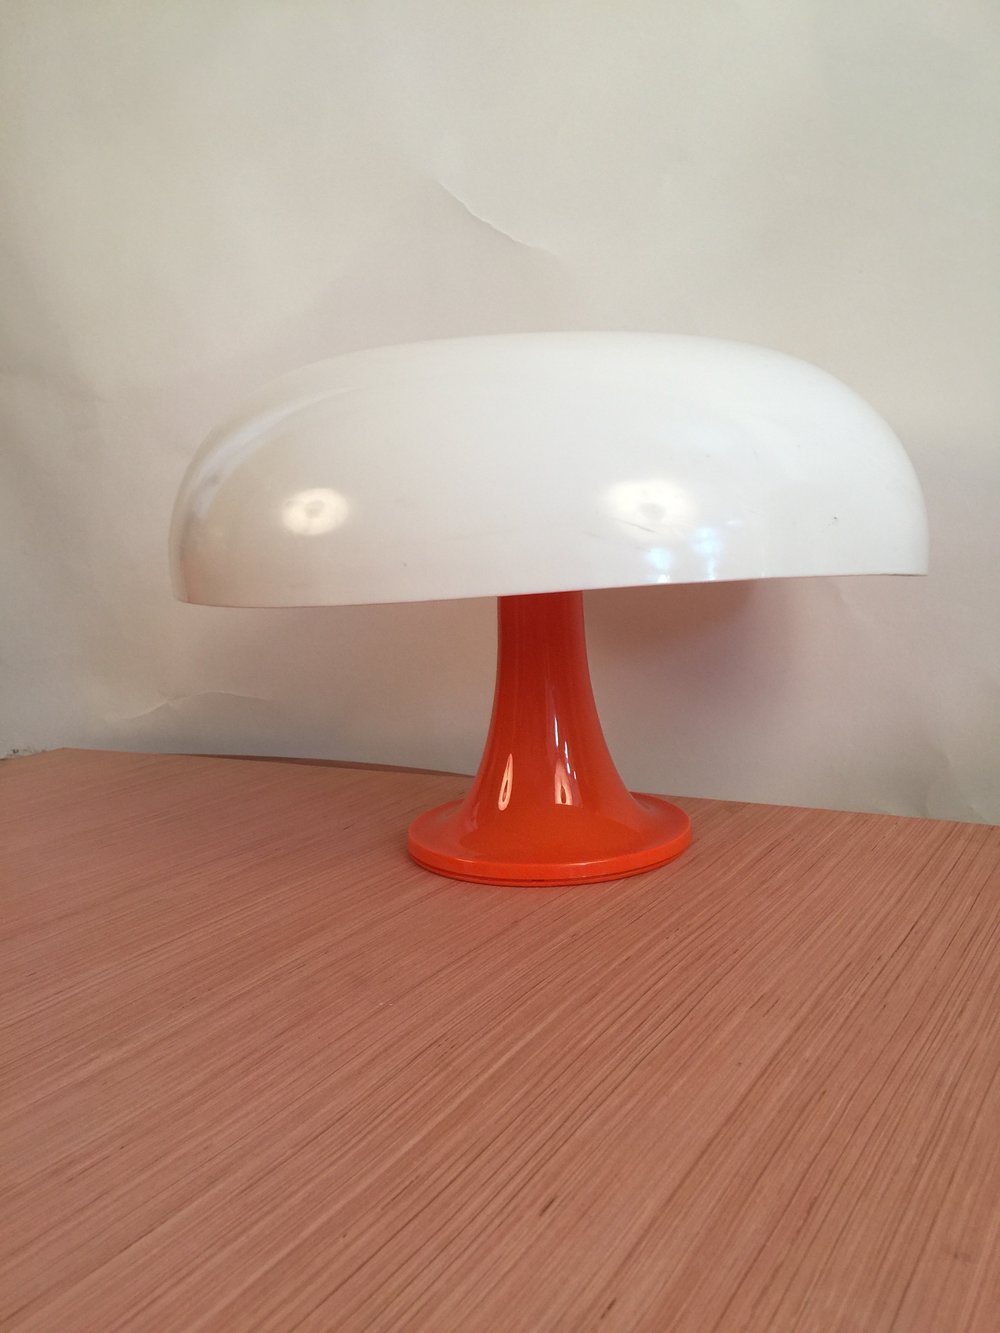 'Ness' Lamp by Giancarlo Mattioli for Artemide 1.JPG